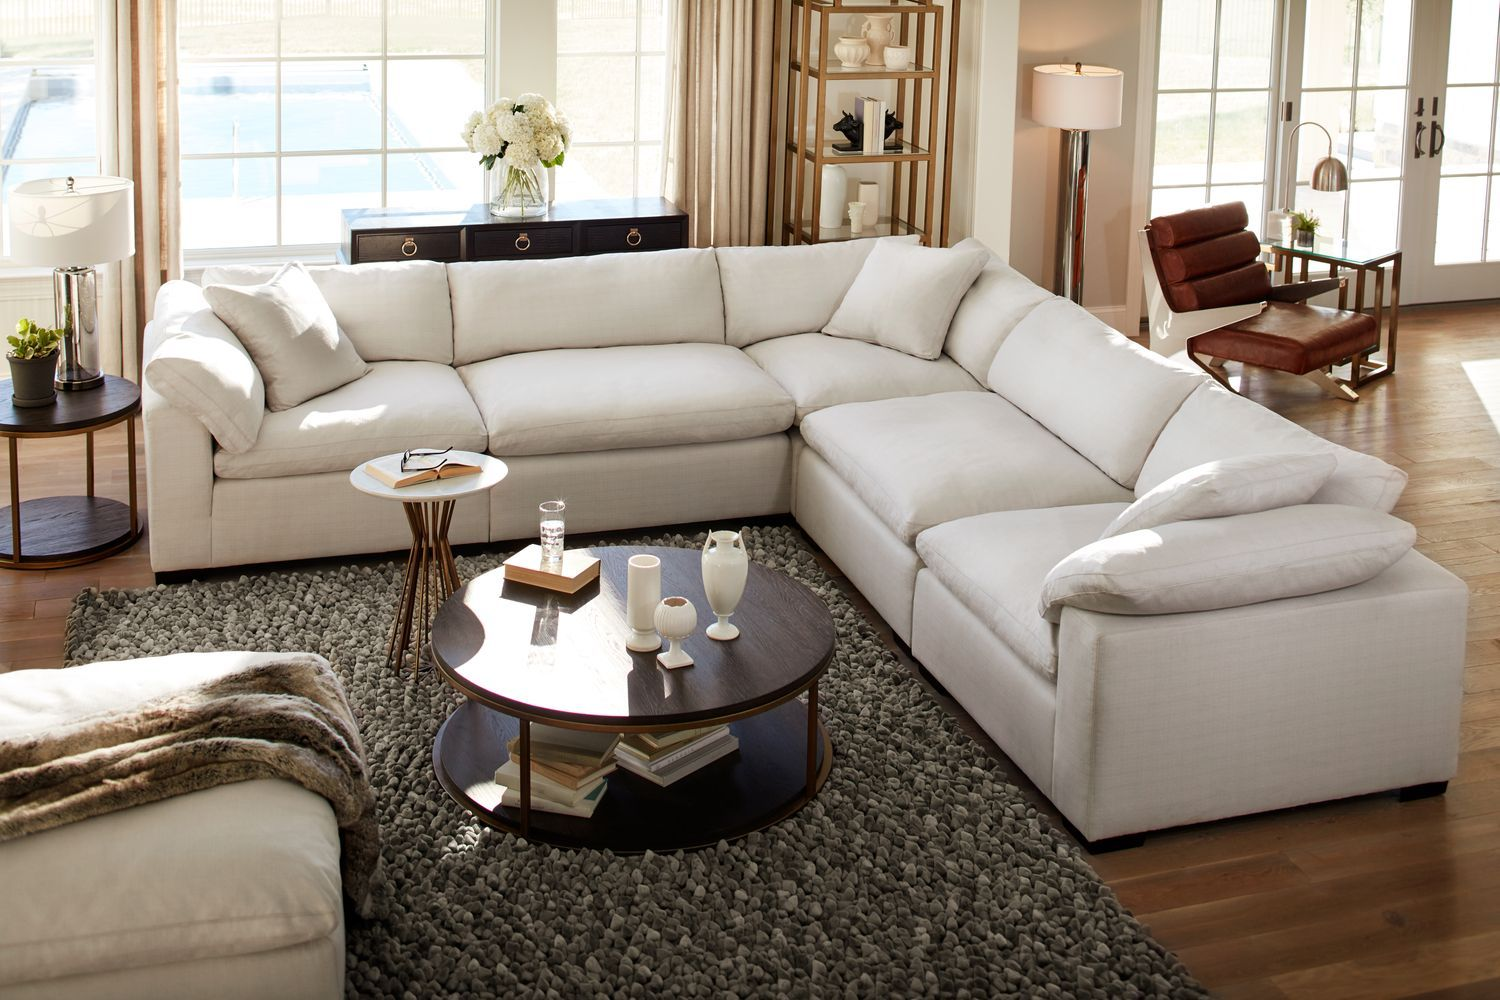 Living Room Furniture Plush 6 Piece Sectional Ivory Living Room Collections Value City Furniture Home Living Room